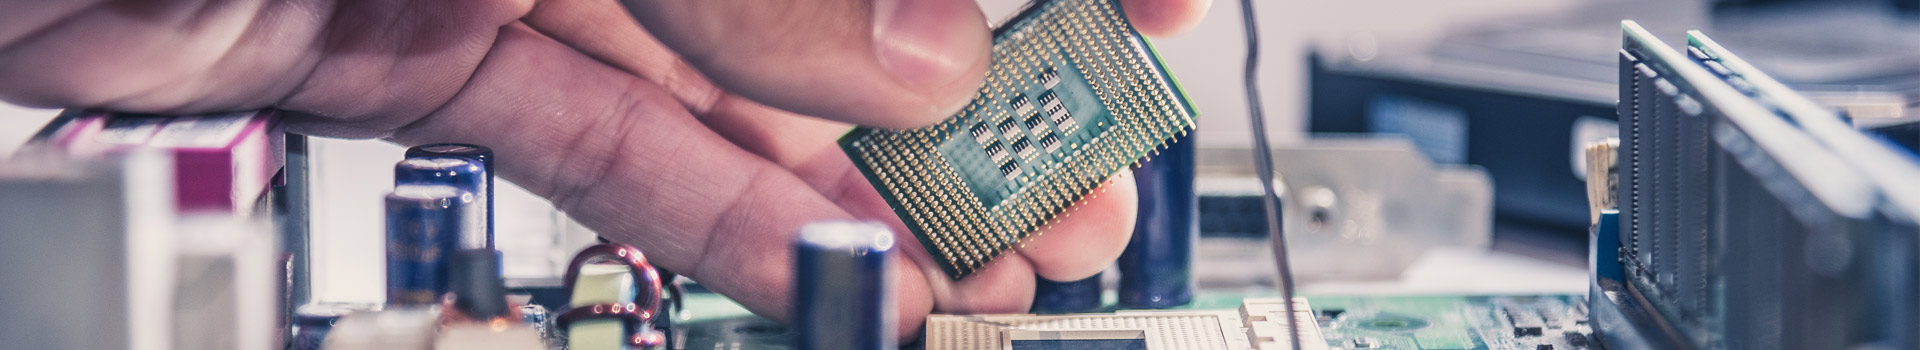 Hardware specificaties, CPU, Graifsche kaarten, RAM